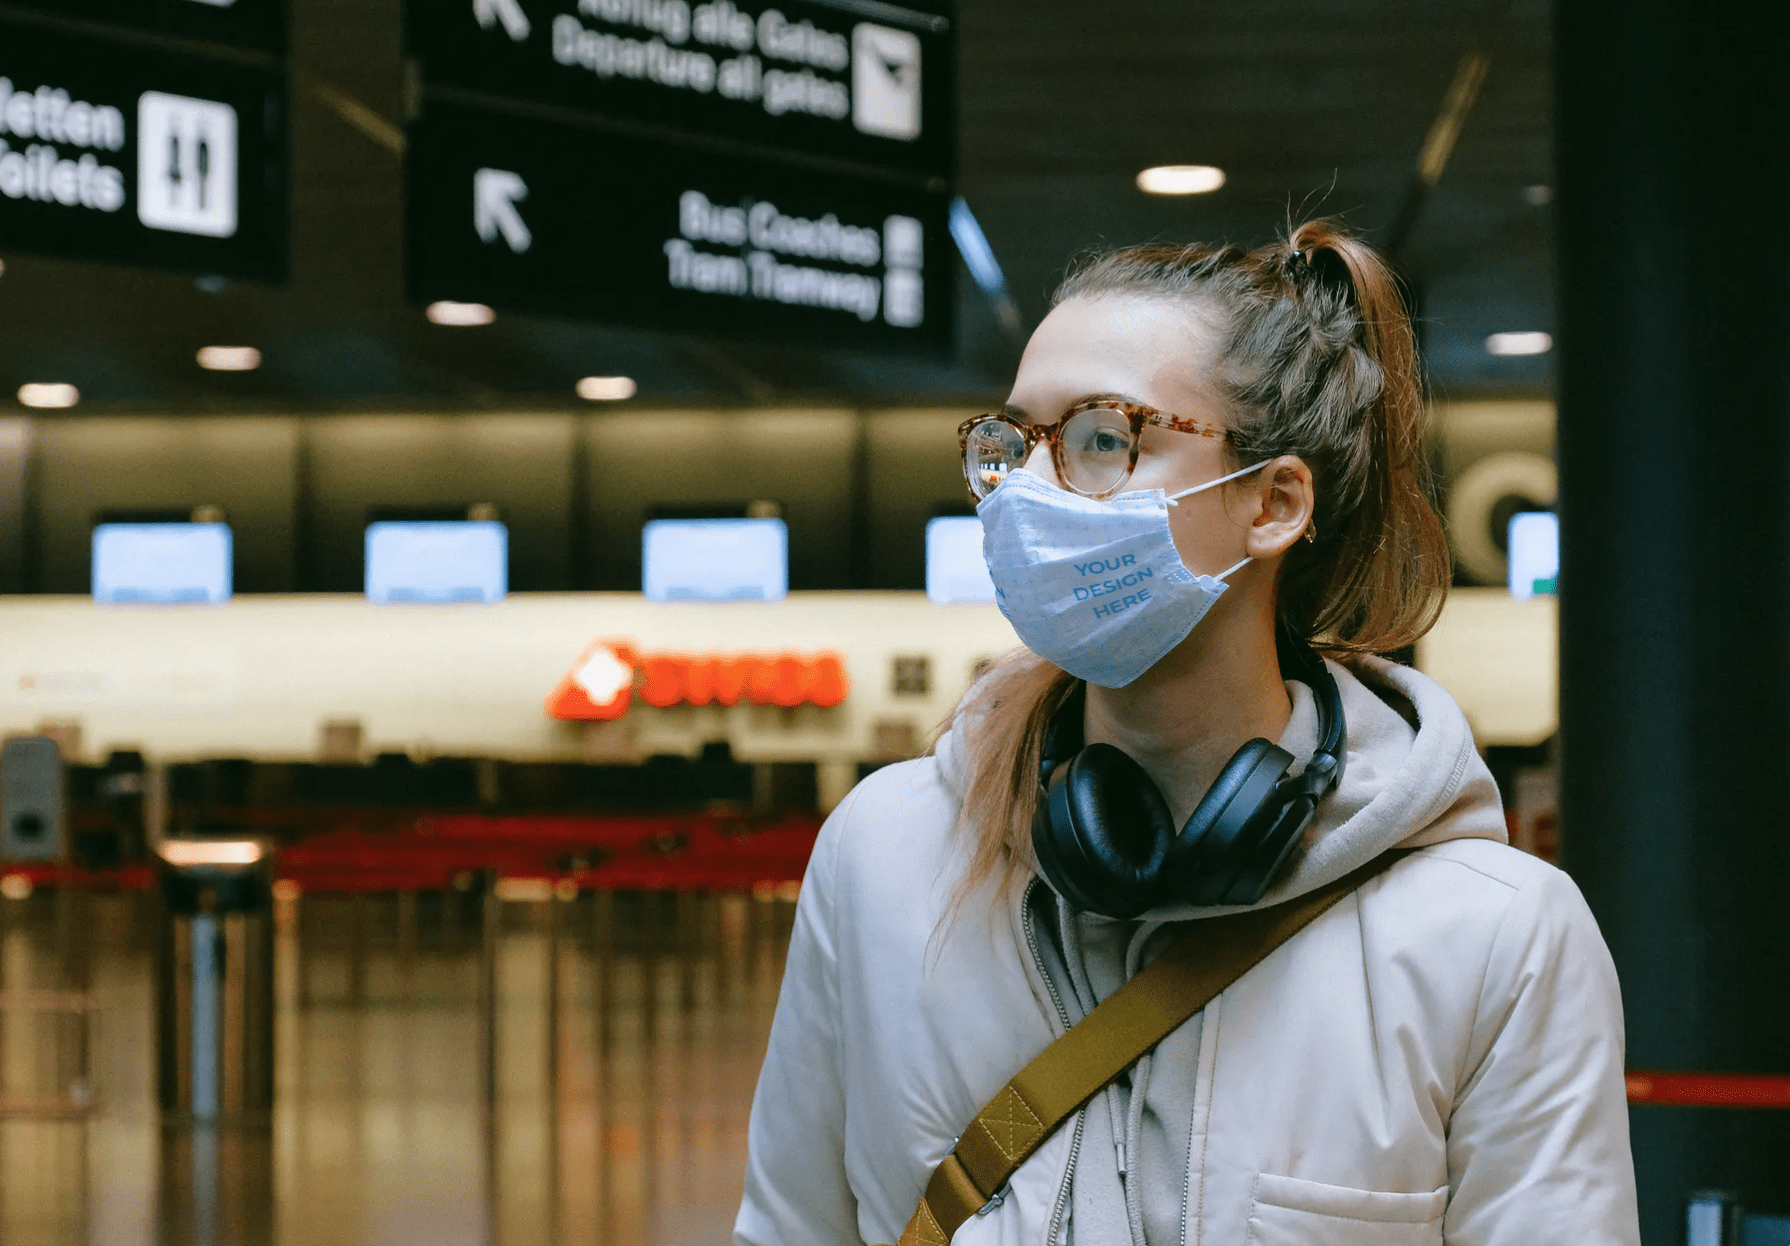 Woman Wearing a Face Mask at the Airport Free Mockup Generator